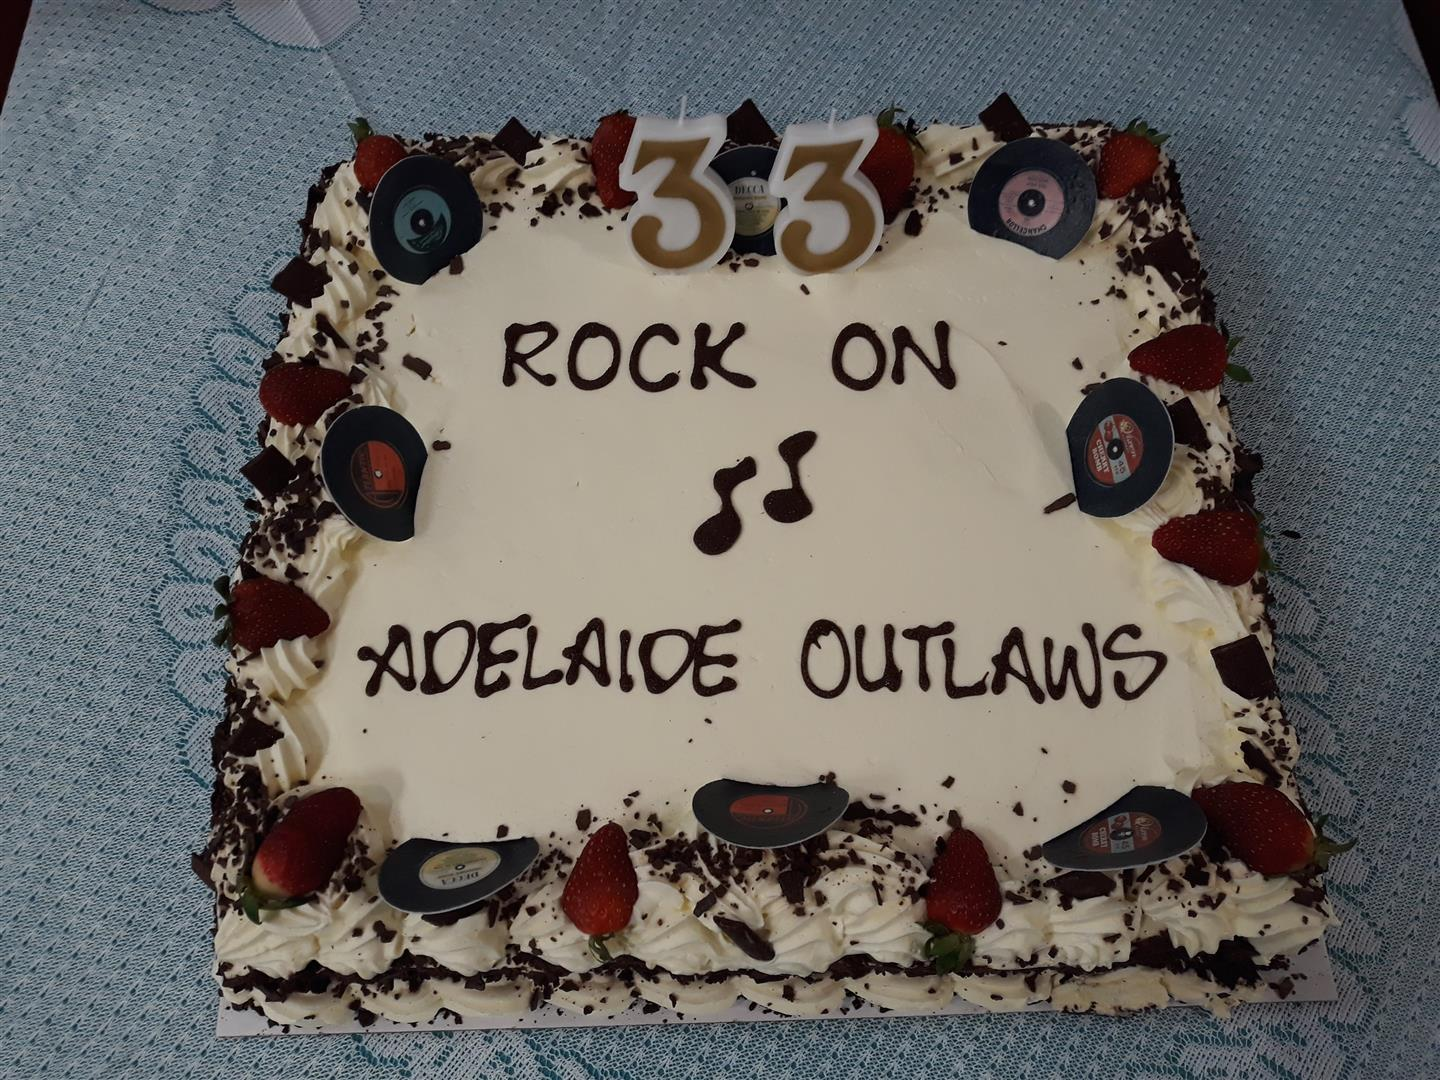 2018 Sept 15th 33rd Birthday RocknRoll Theme